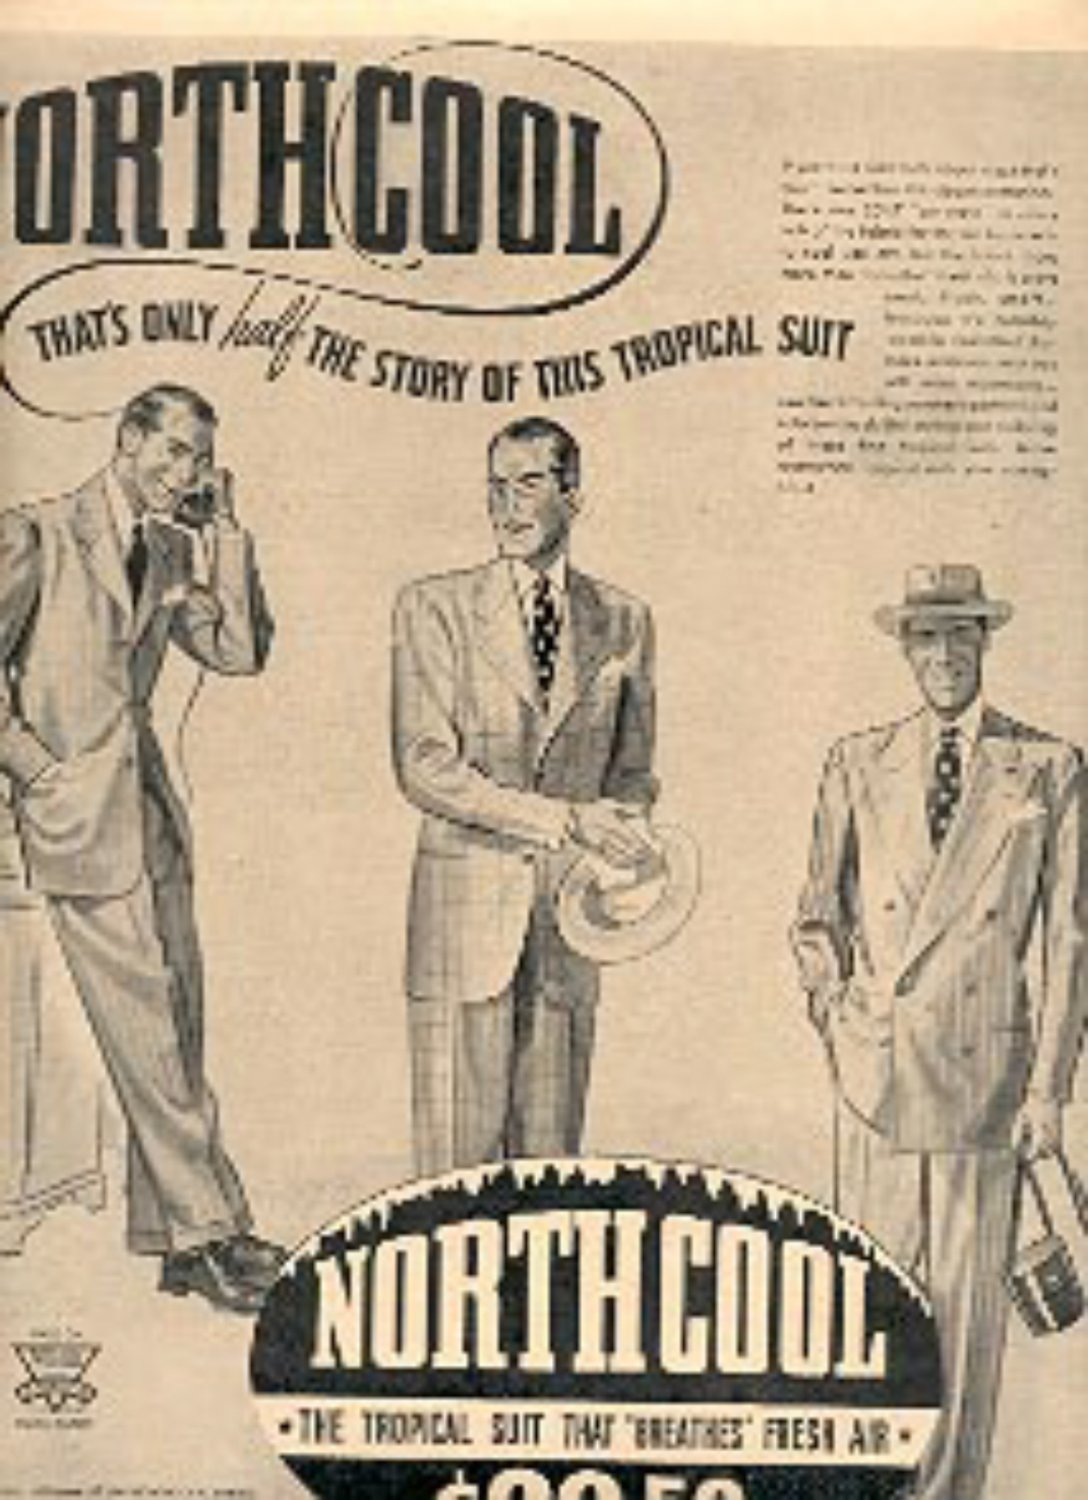 1947 Northcool Suit ad (# 2158)